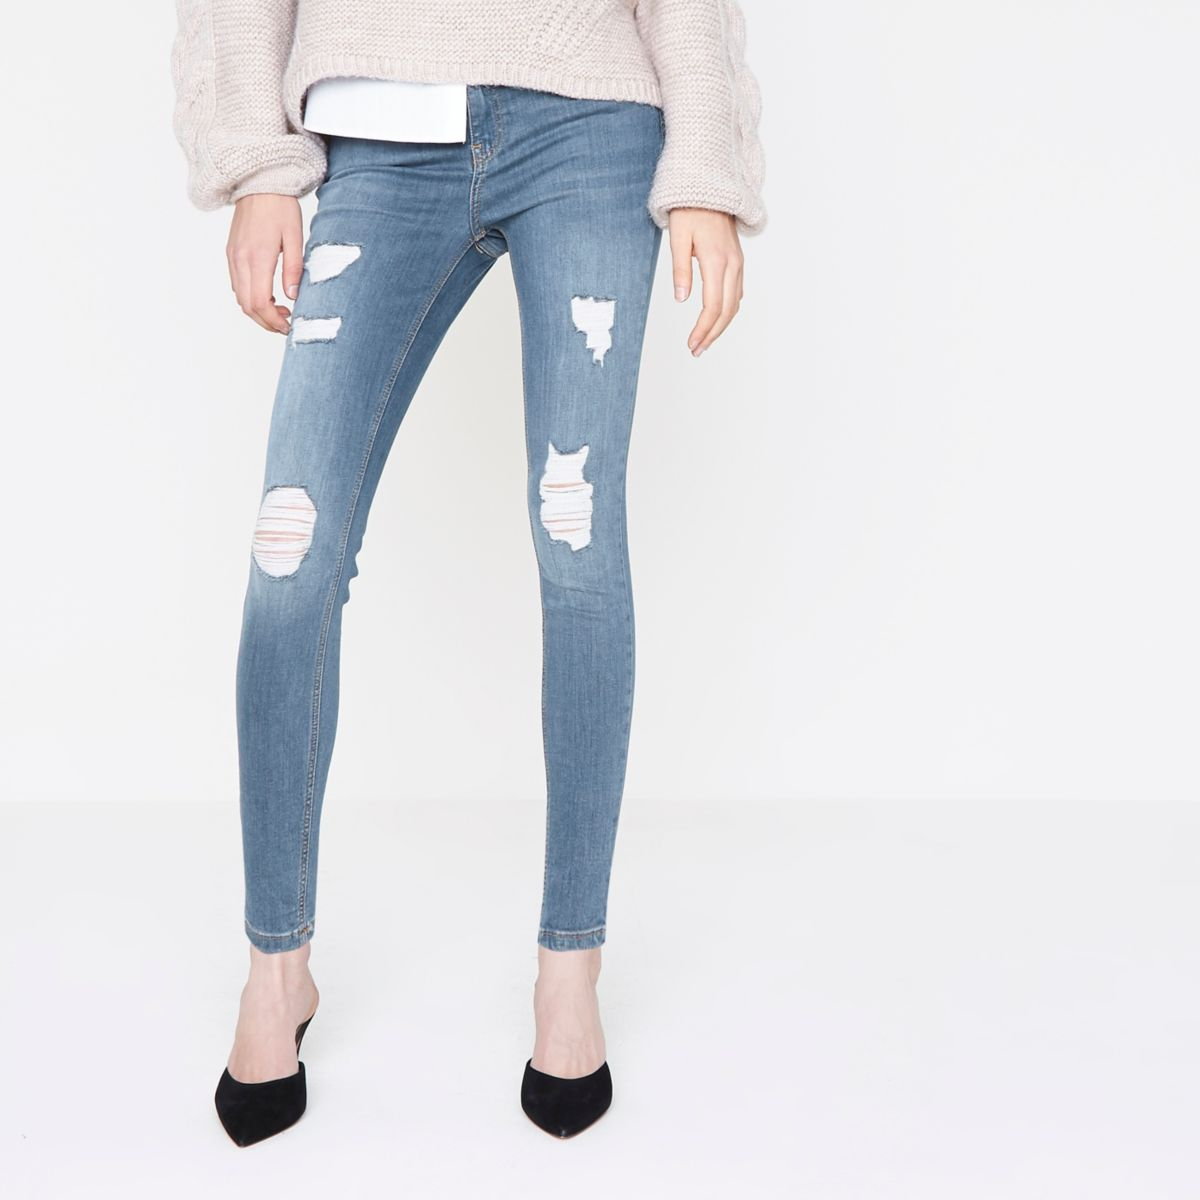 Create a flawless shape in these super-soft skinny jeans from William Rast, finished with ripped knees and released-hem styling for an ultra-chic vibe that works day to night. more More like this Find other Women's Jeans.